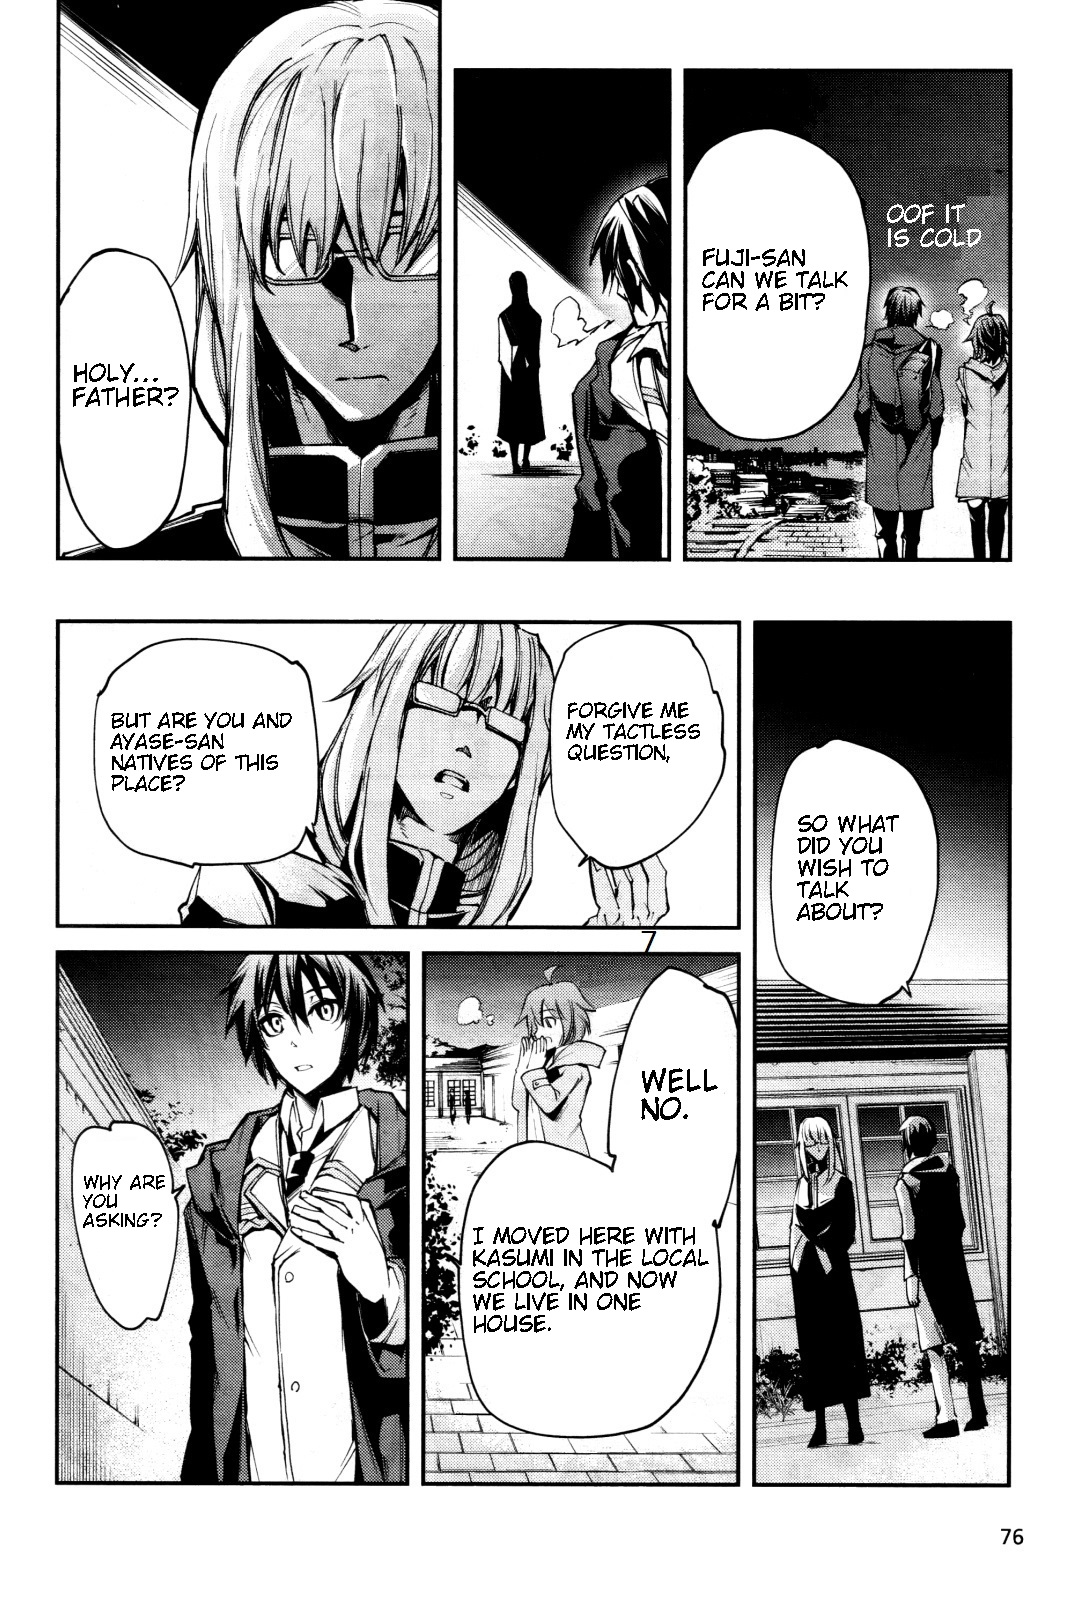 Dies Irae - Amantes Amentes - Chapter 2